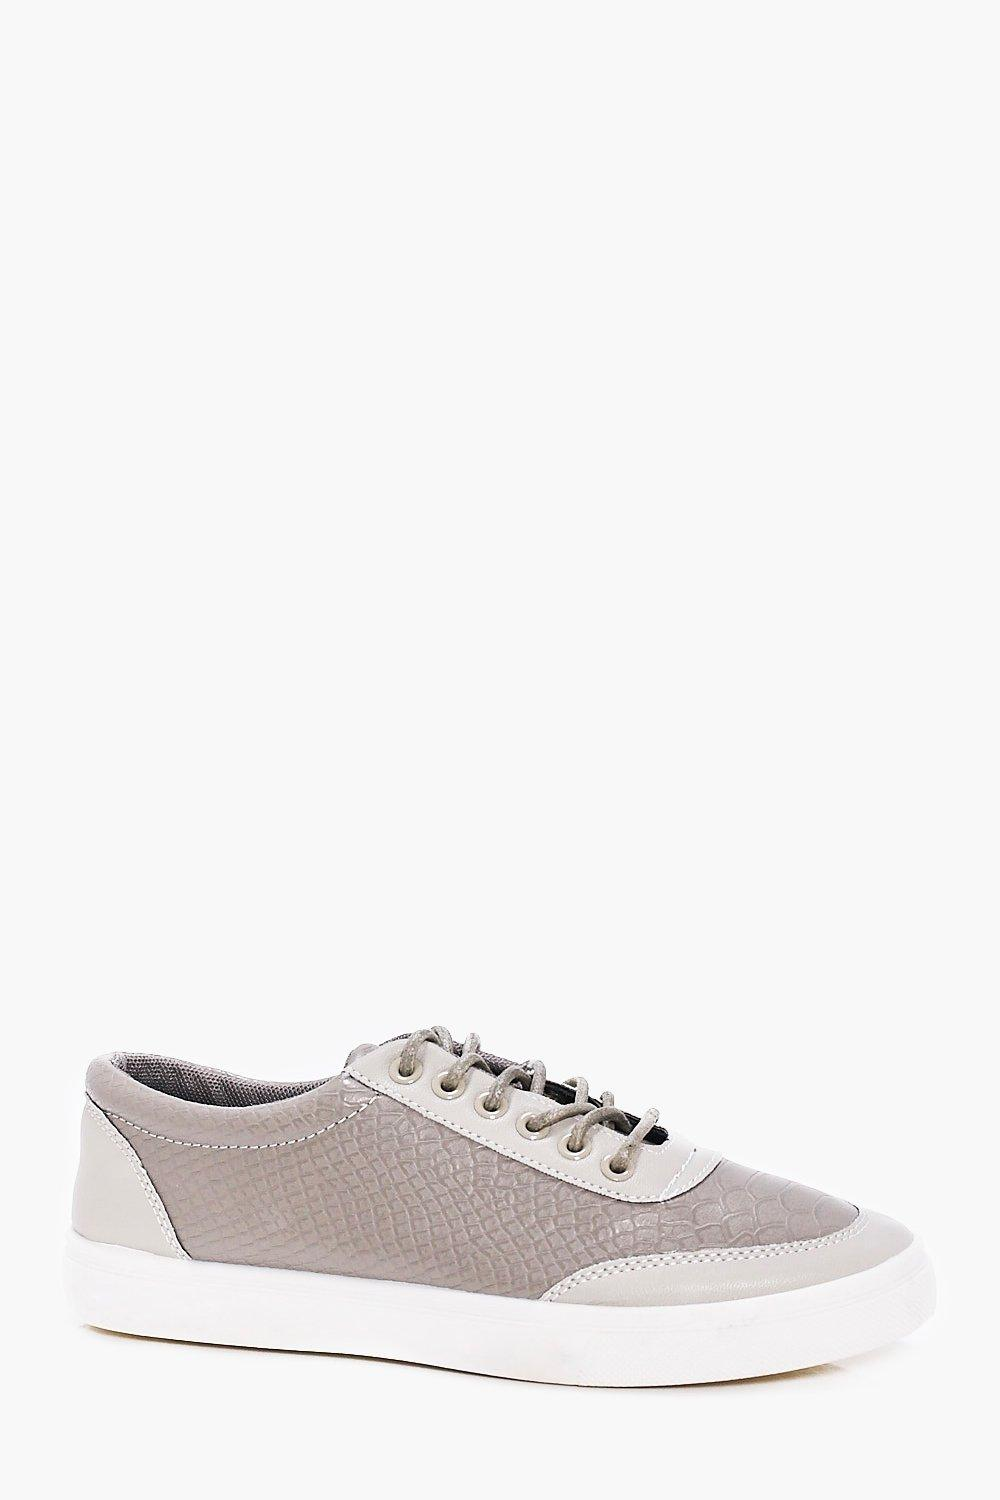 Croc PU Smart Lace Up Shoe